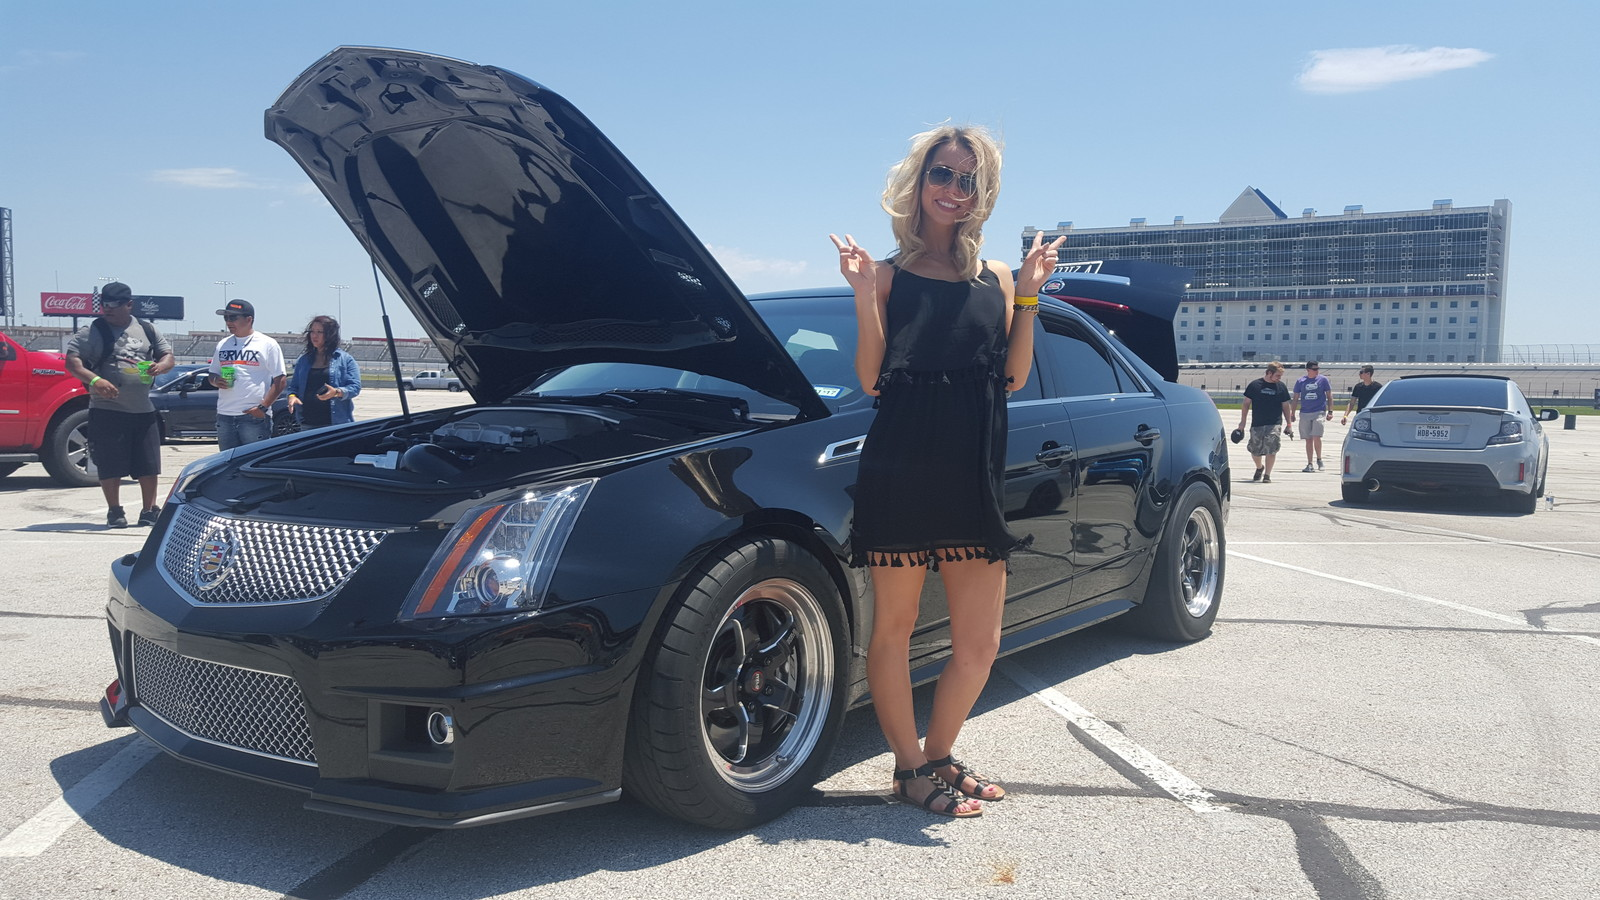 Cts V Coupe >> 2012 Cadillac CTS-V Sedan 1/4 mile trap speeds 0-60 - DragTimes.com